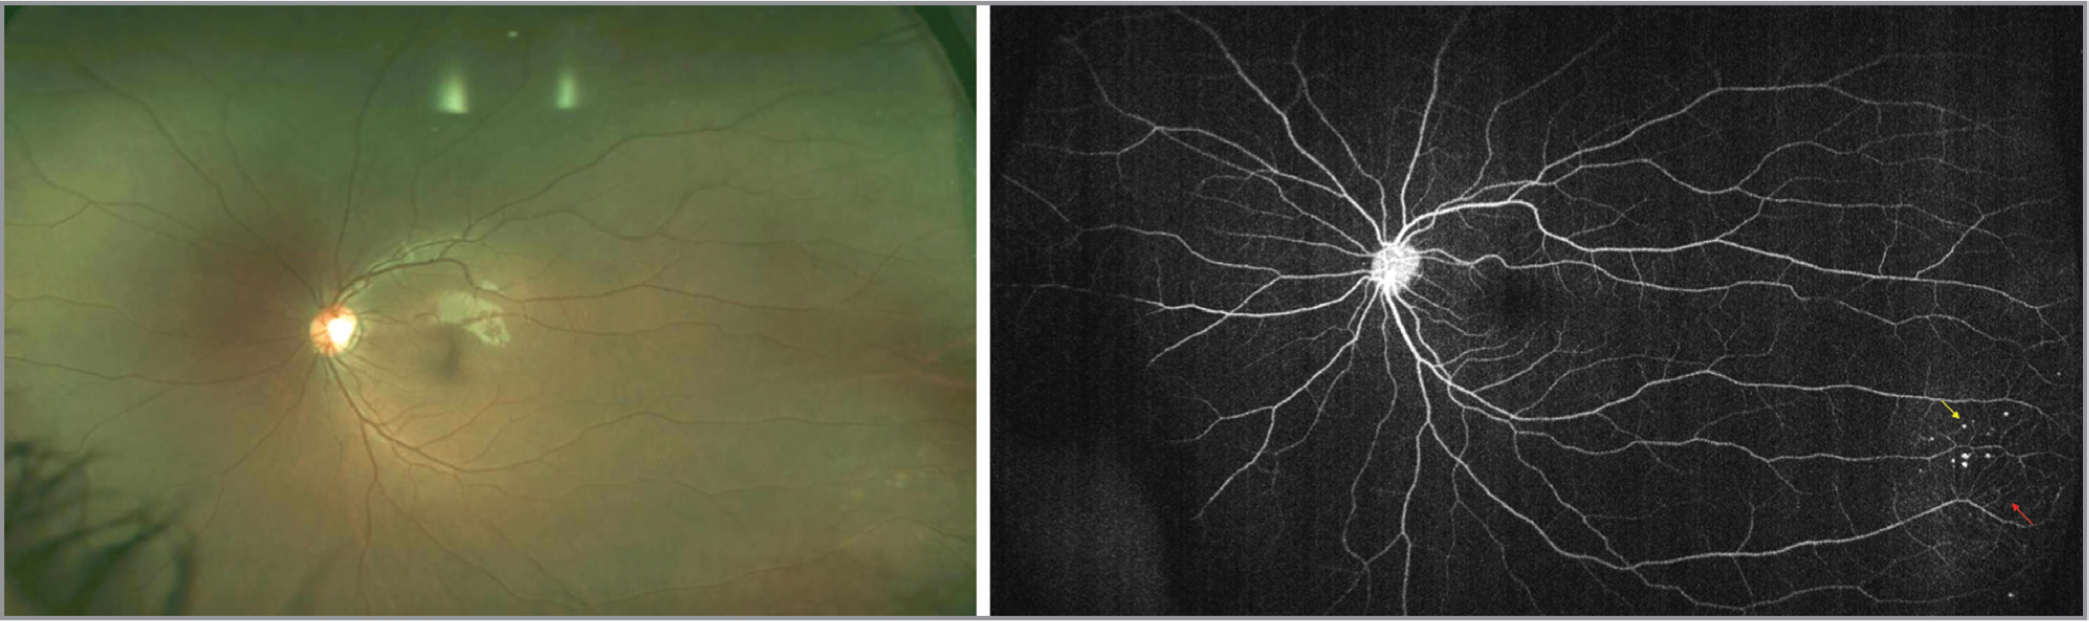 Fundus image (left) and widefield fluorescein angiography (right) of the fellow unaffected eye in a patient with Coats' disease demonstrating aneurysms (yellow arrow) and telangiectasias (red arrow).